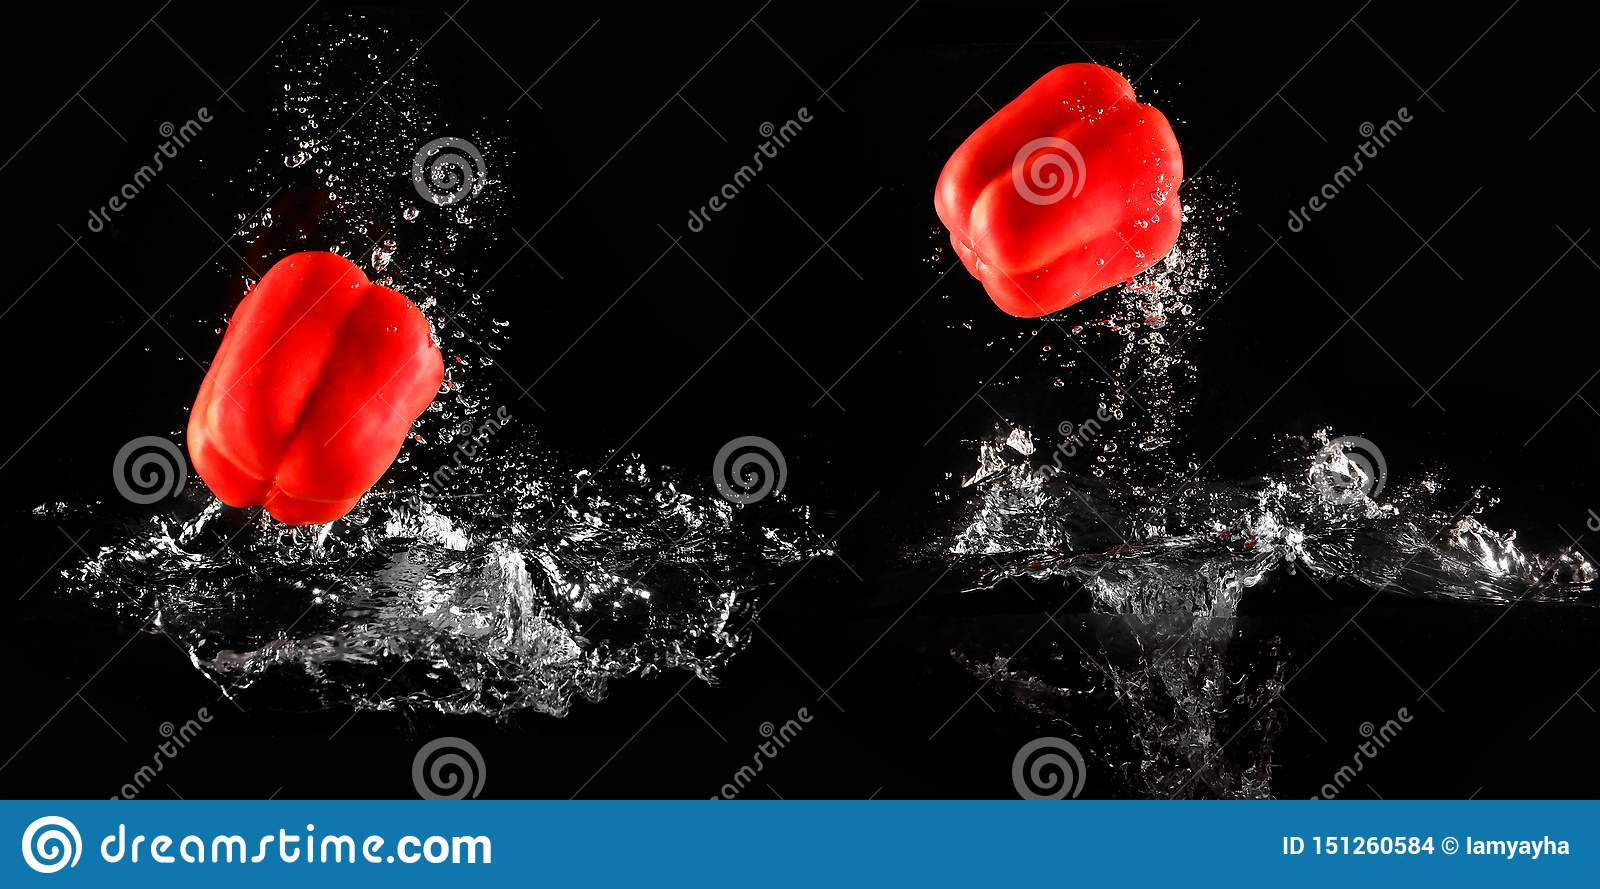 Bell Pepper with Water Splash and Bubble Isolated for Vegetable. Fresh Single Red Pepper Drop in Water. Juicy Red Capsicum Paprika